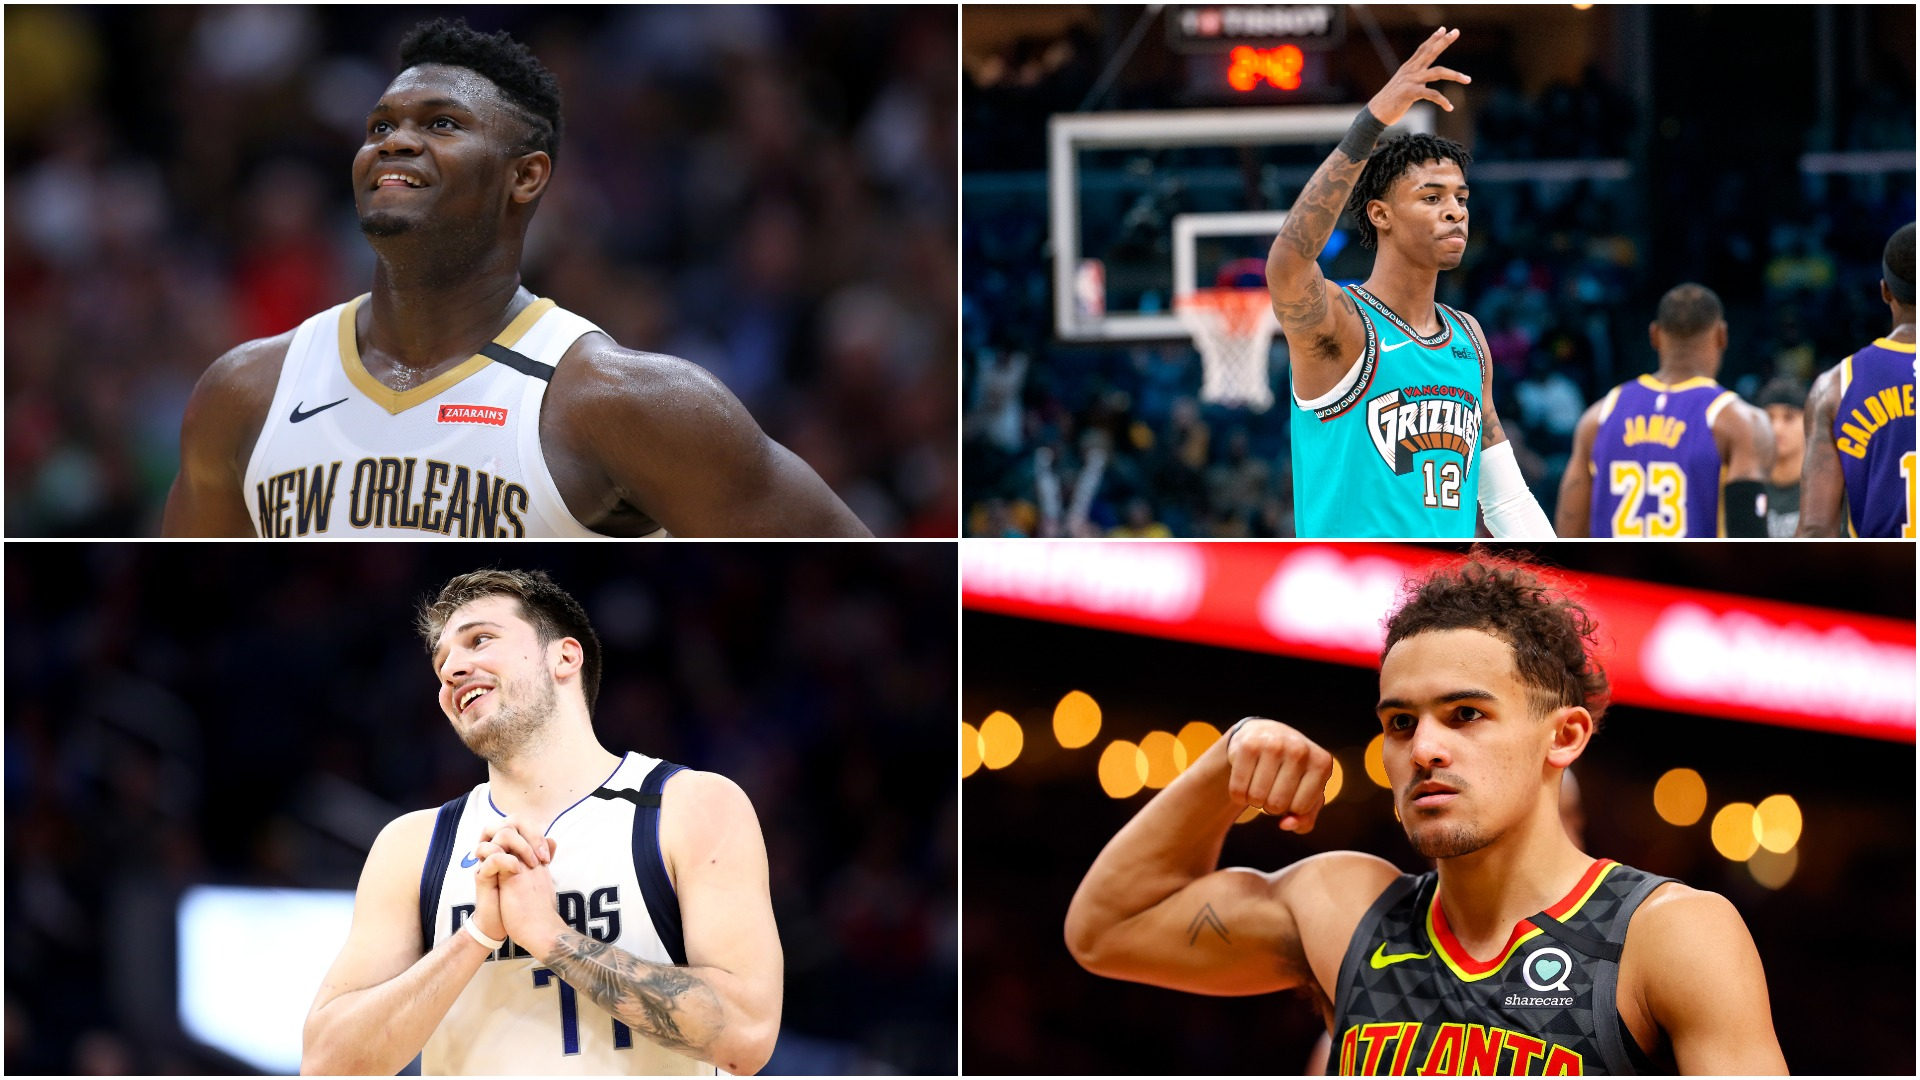 Zion, Morant & Doncic - The NBA prodigies set to light up the Rising Stars Challenge